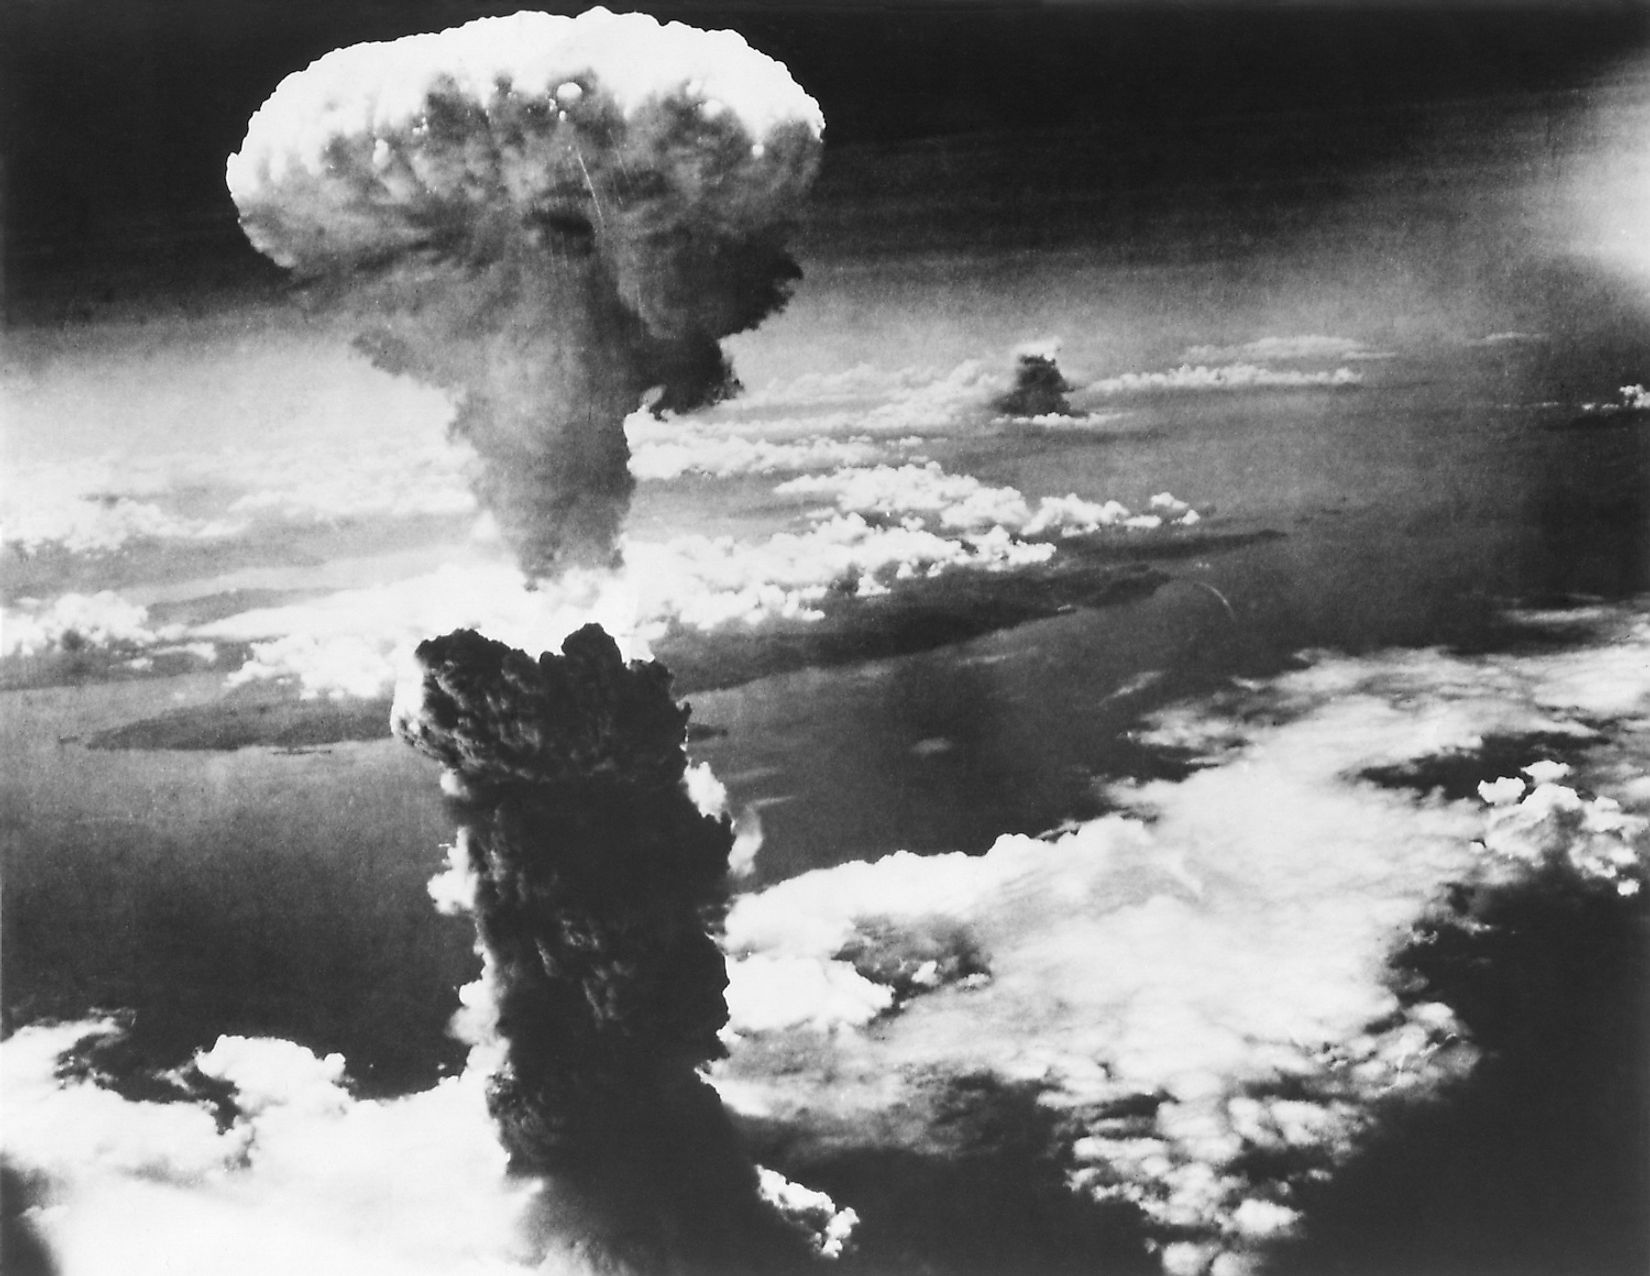 Mushroom Cloud of Atom Bomb exploded over Nagasaki, Japan, on August 9, 1945. World War 2. Image credit: Everett Collection/Shutterstock.com